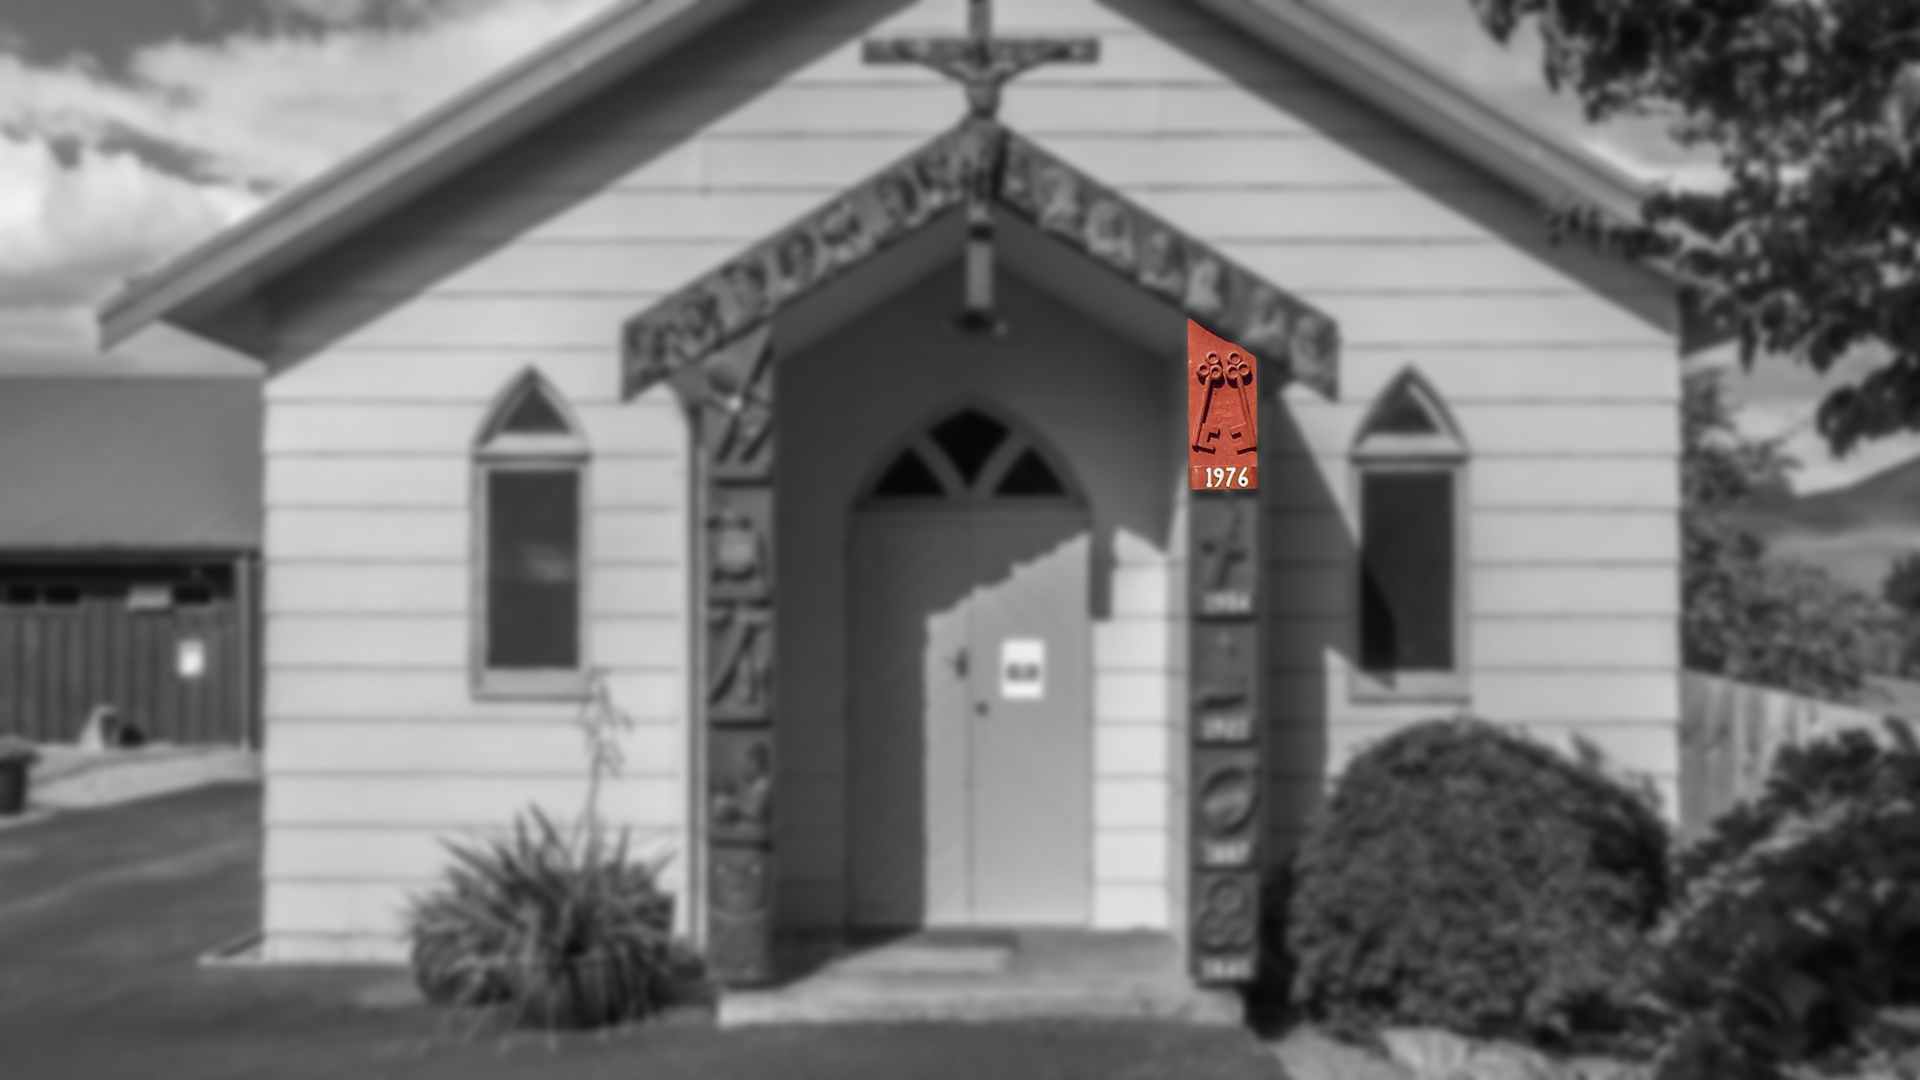 1976: The parish being served by New Zealand born diocesan clergy